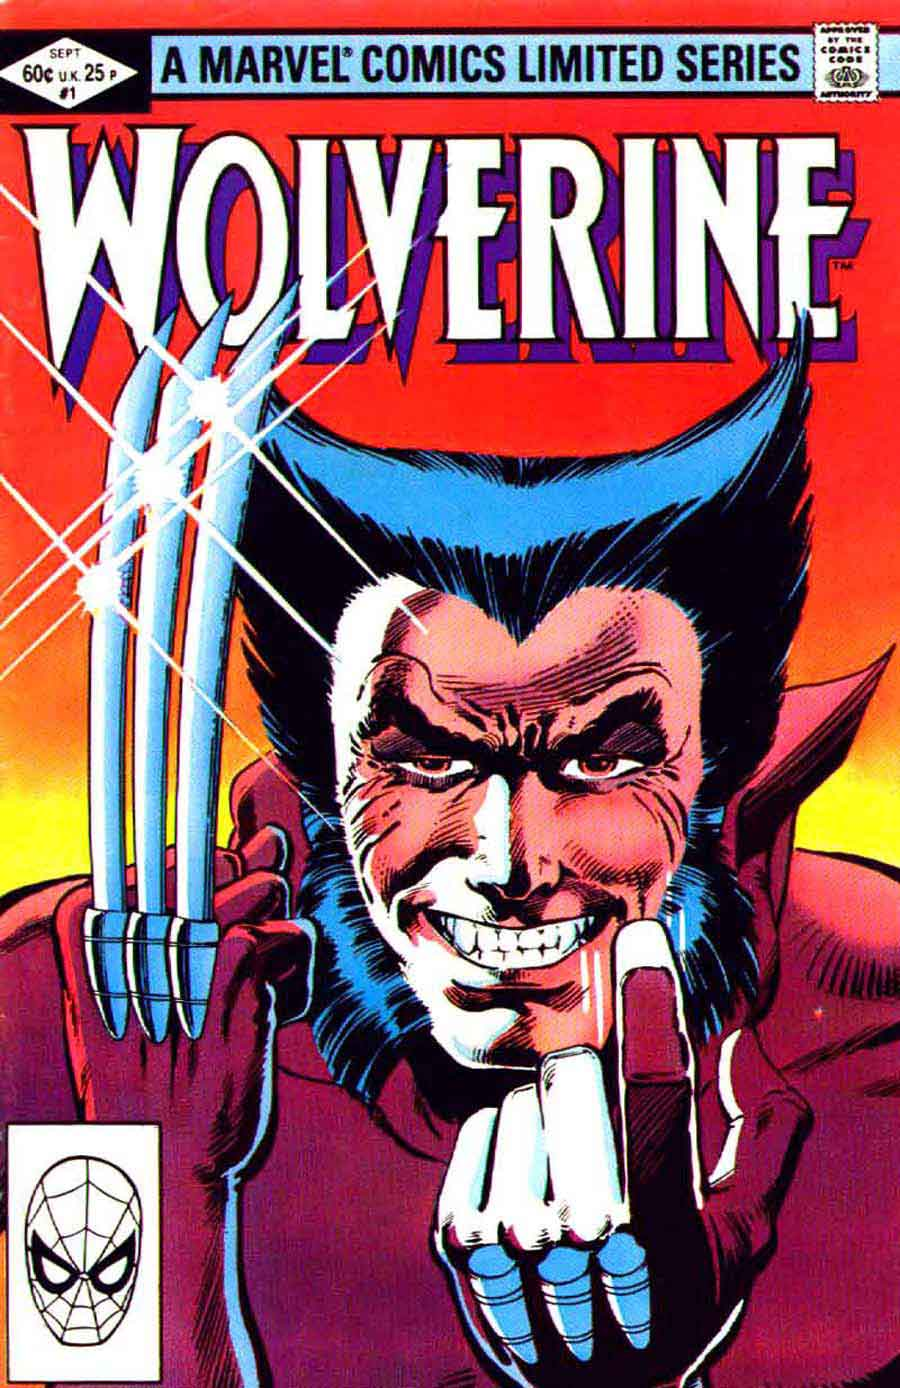 Comic Book Cover Drawing ~ Wolverine frank miller art cover pencil ink